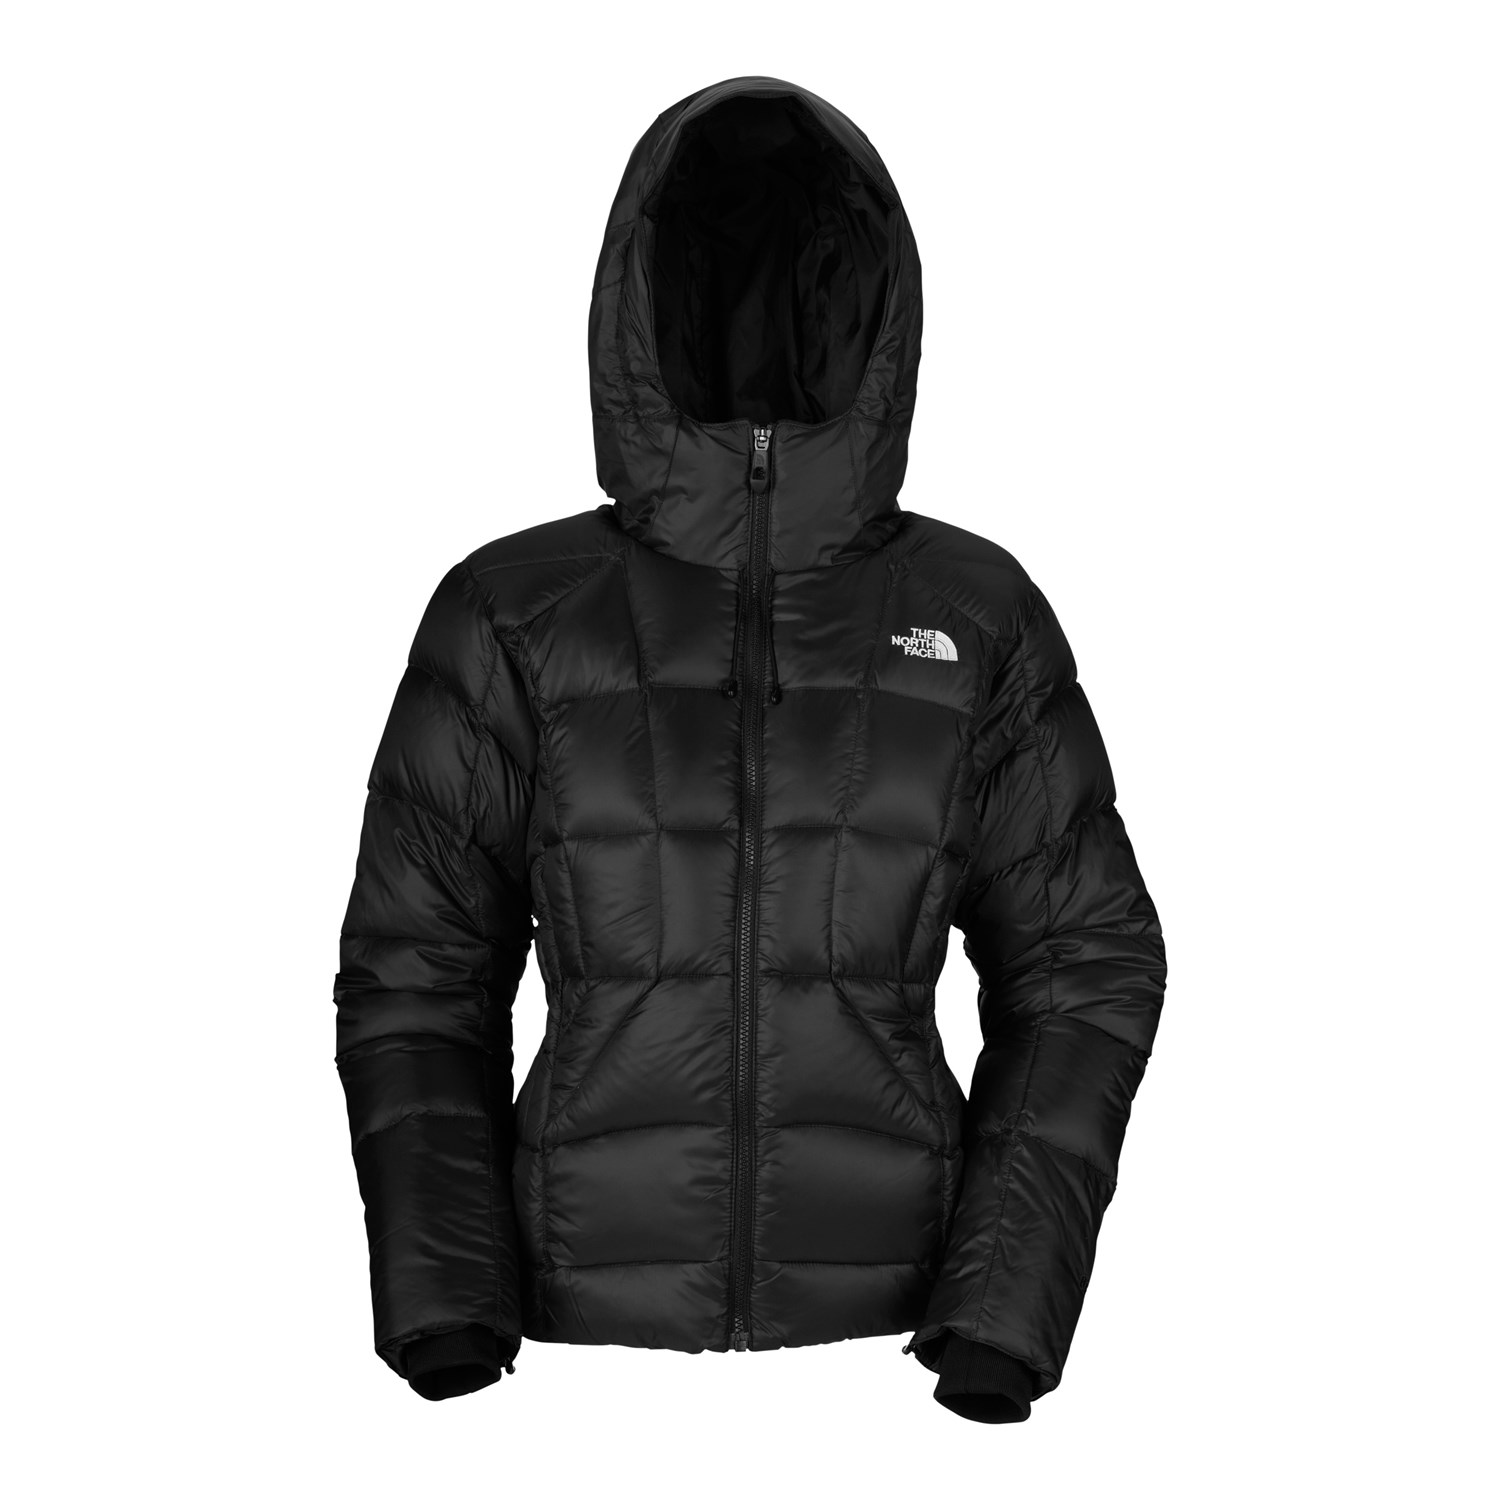 5816f931941a The North Face Destiny Down Jacket - Women's | evo